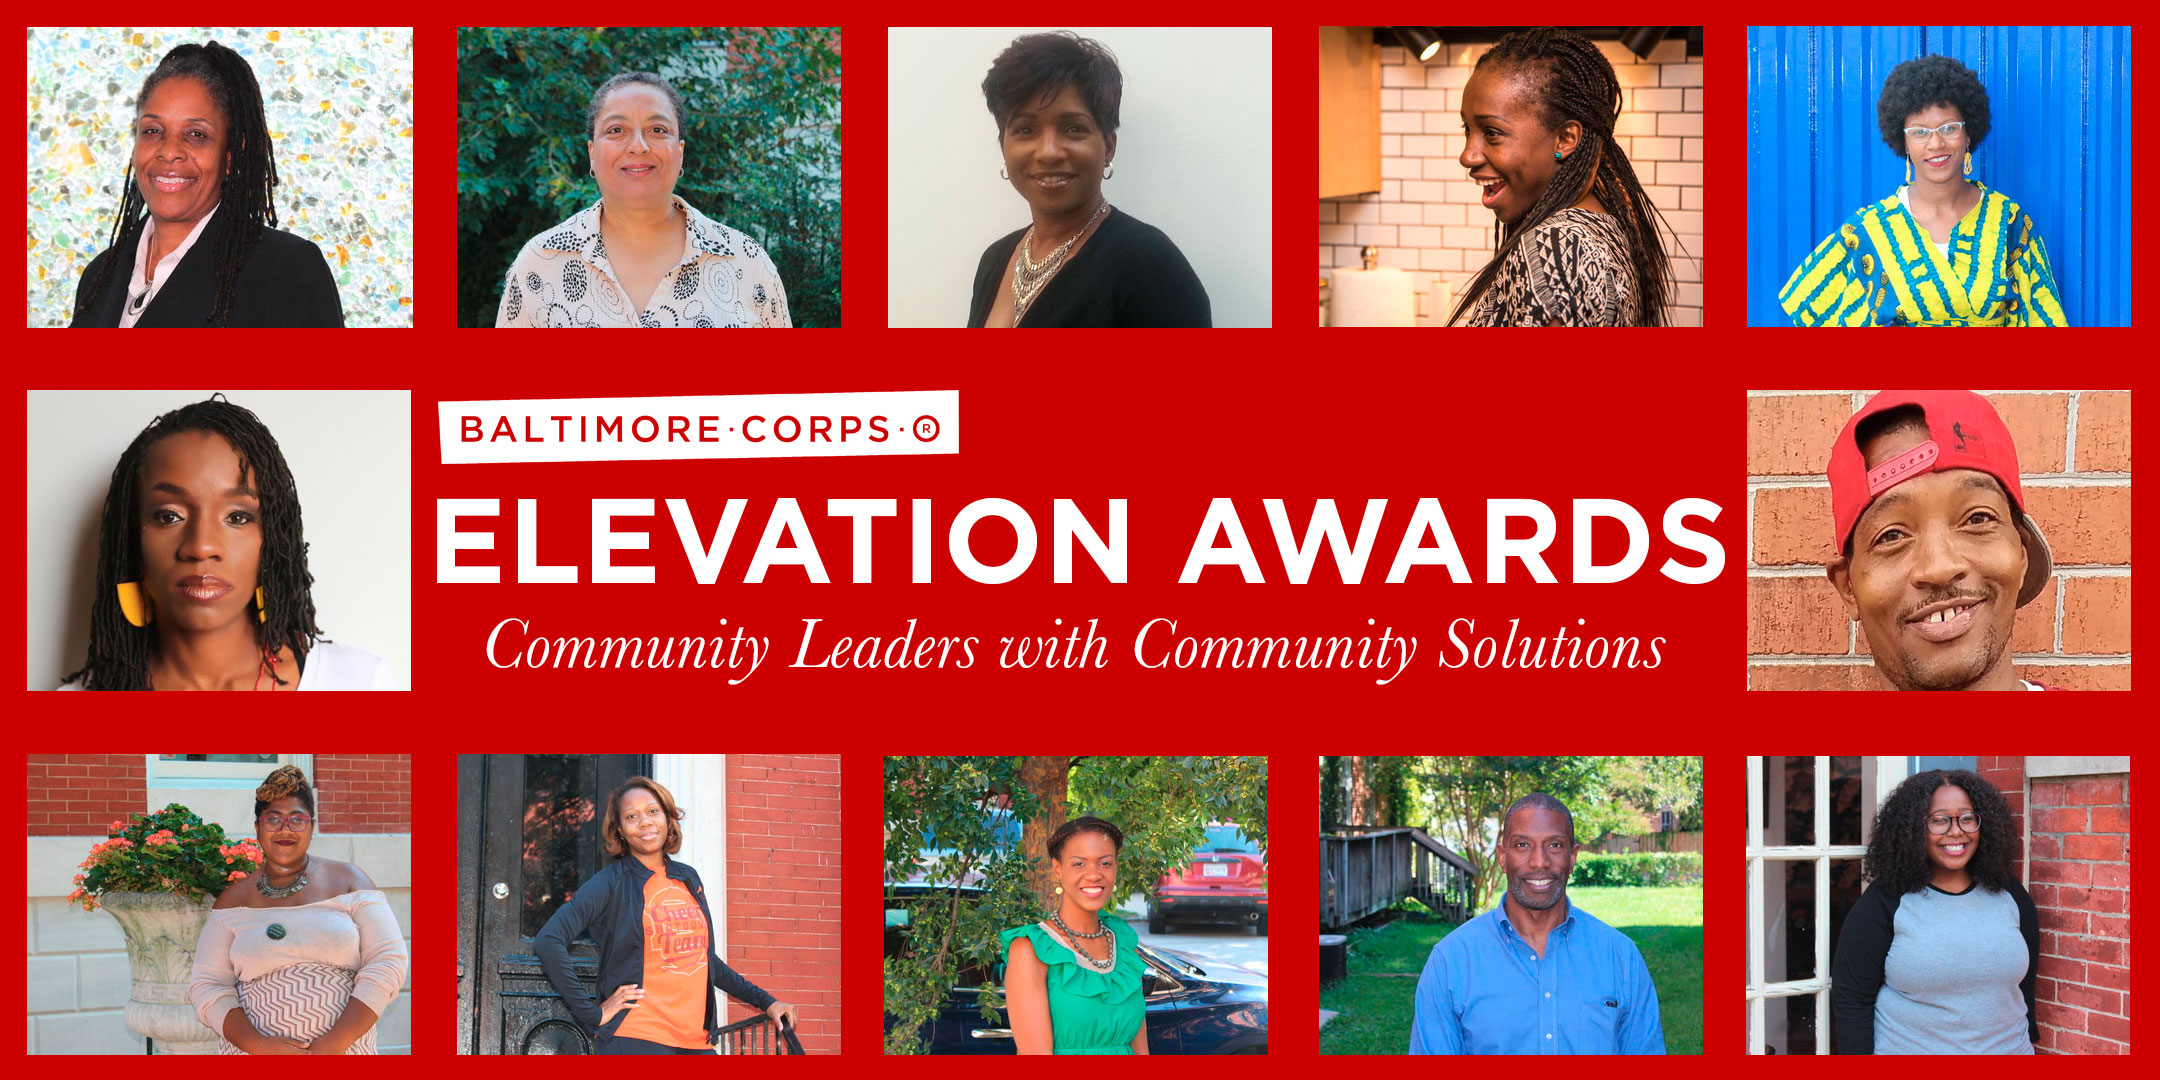 Elevation Awards banner with Awardees pictures Community Leaders with Community Solutions